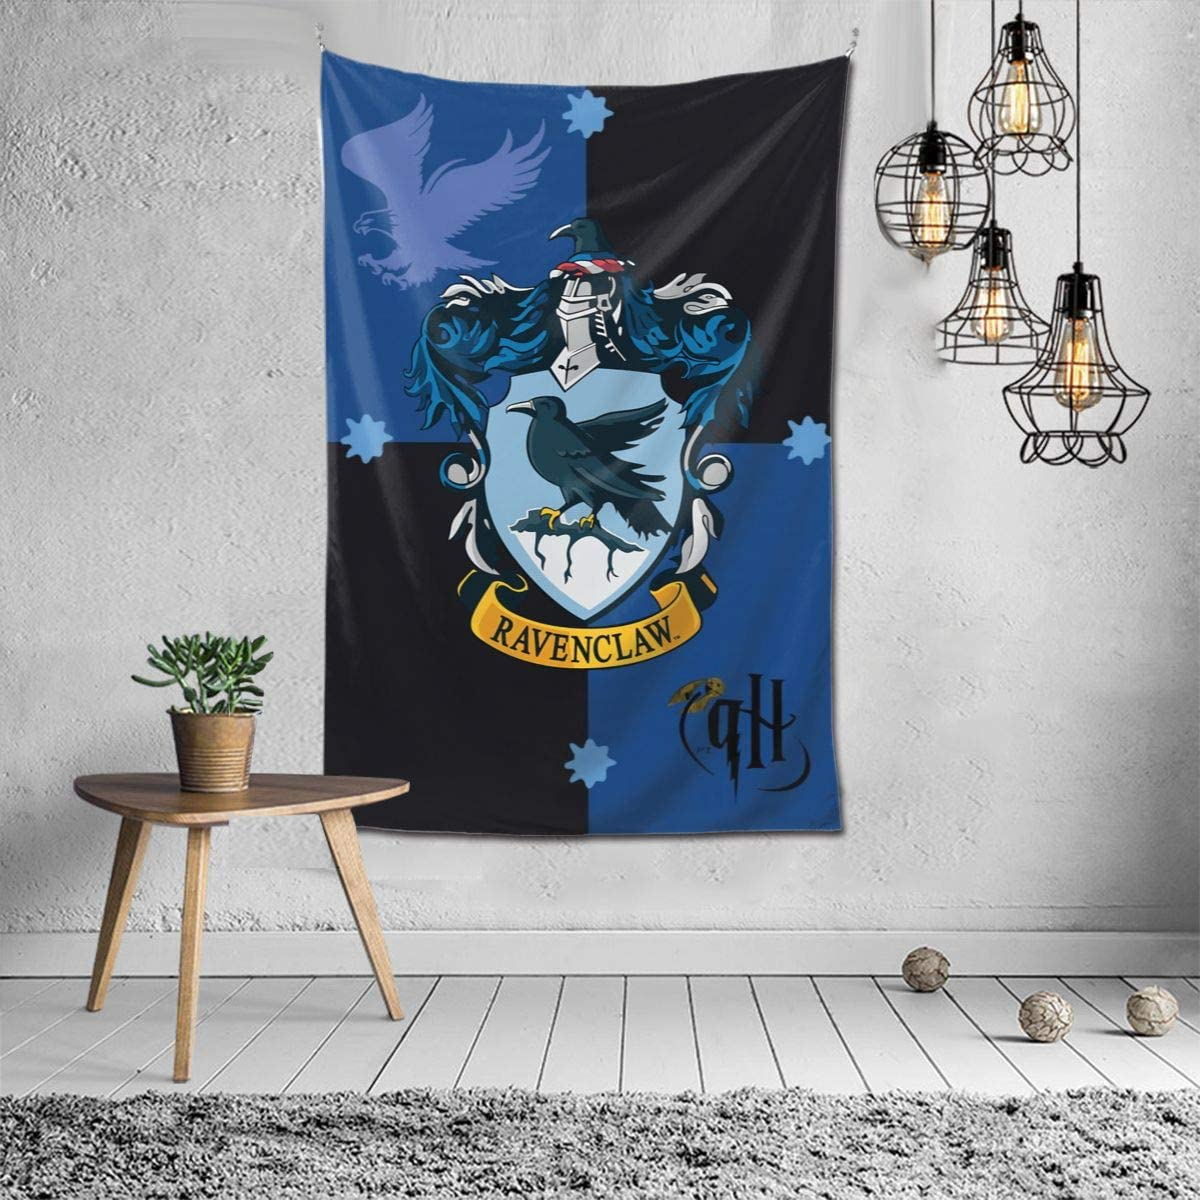 Raven-claw Tapestry Wall Hanging Fashion Home Decoration Wall Blanket Dormitory Living Room Bedroom 60x40inch